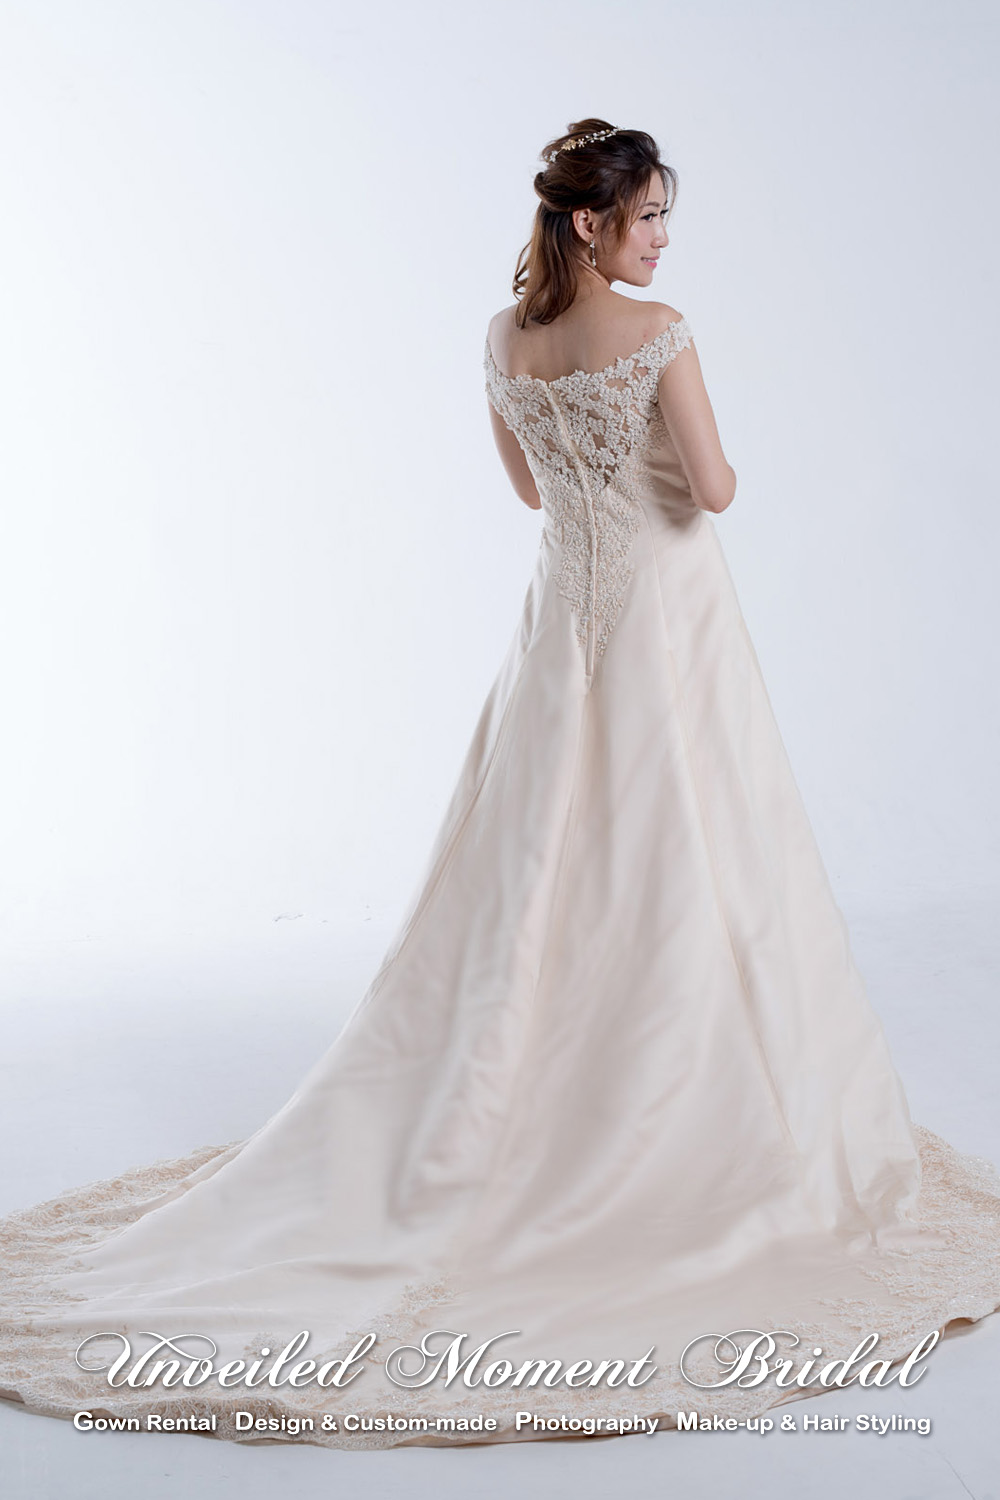 Sleeveless, scoop neckline, A-line wedding gown with beaded lace appliques and a court train. Colour: Champagne. 無袖, 圓領, 蕾絲釘珠, 拖尾, A-line香檳金色婚紗